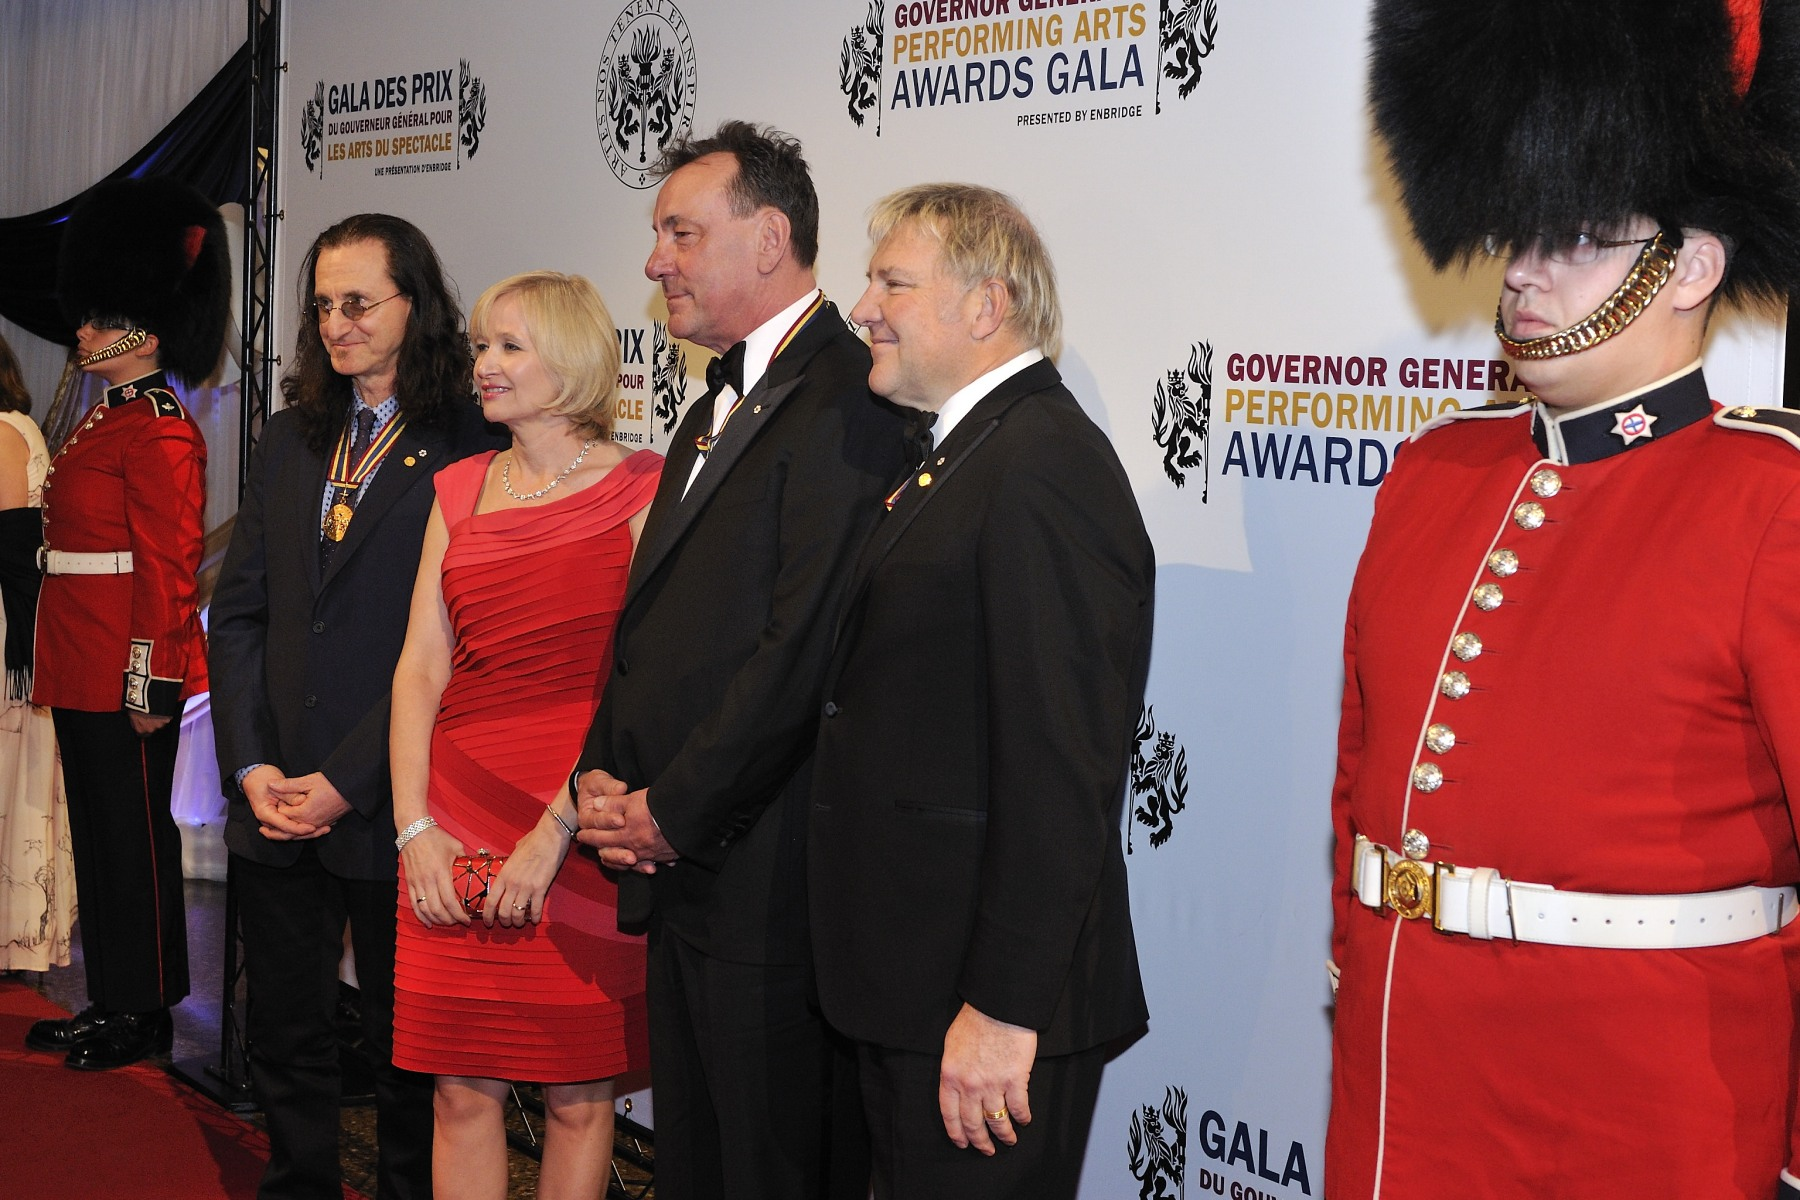 Mrs. Laureen Harper was seen on the red carpet with the members of the rock band Rush, laureates of the 2012 Lifetime Artistic Achievement Awards. The gala